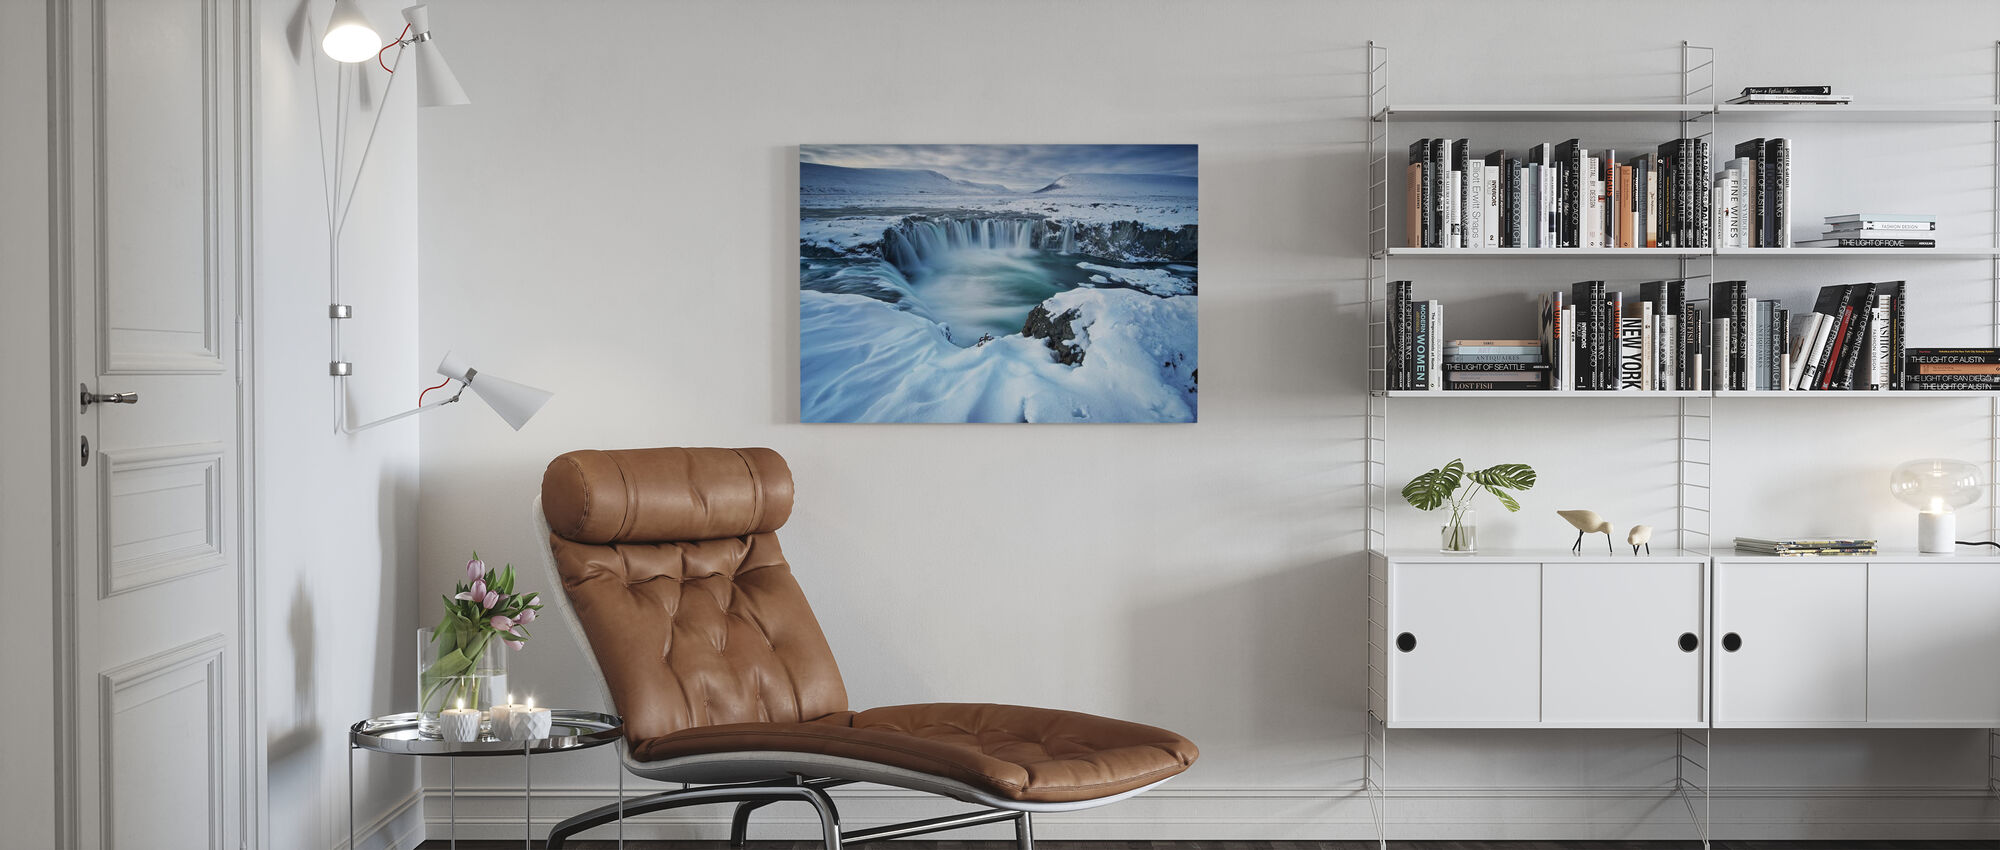 Waterfall of the Gods - Canvas print - Living Room